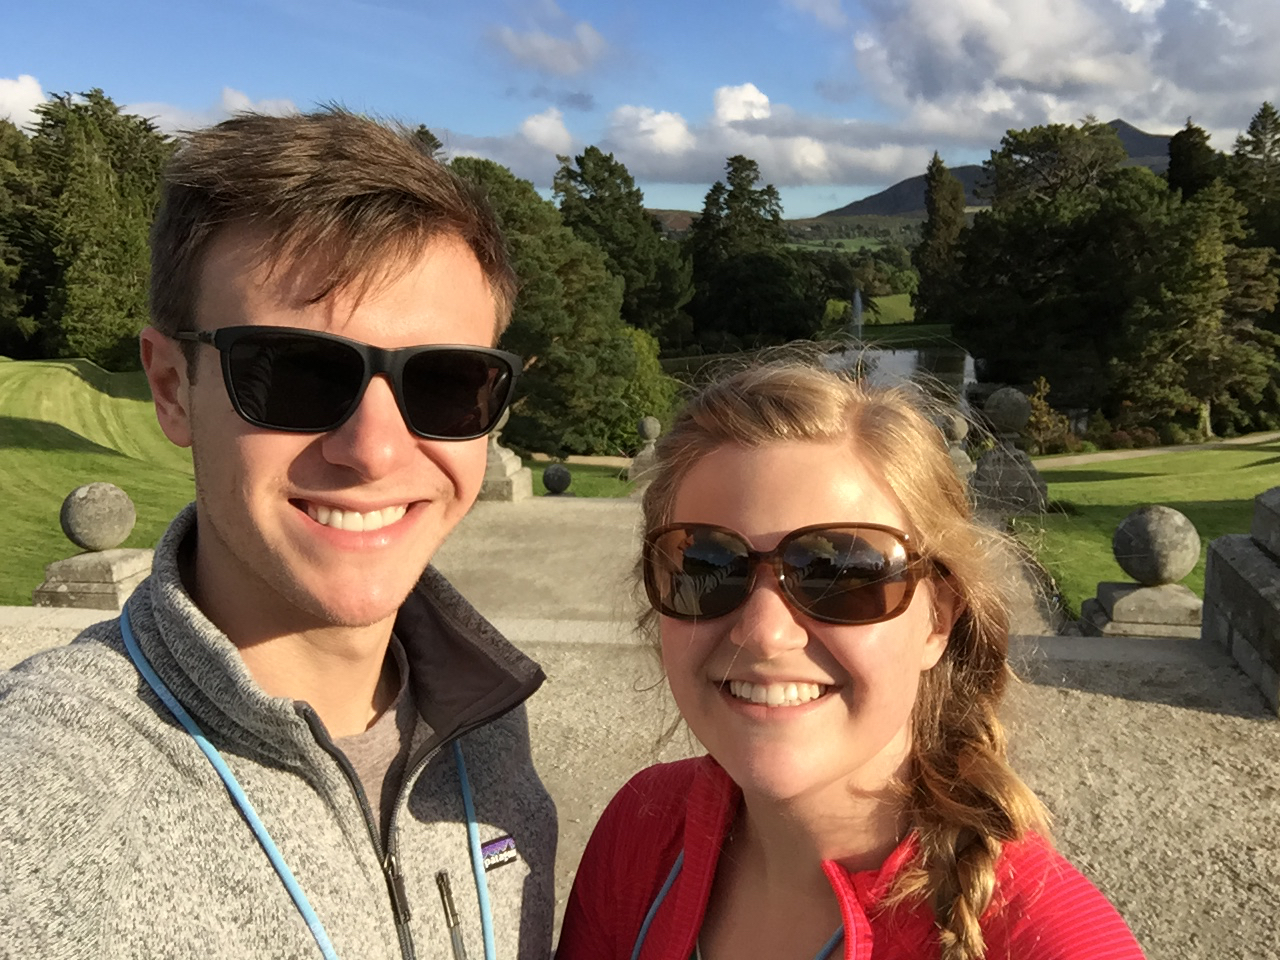 A sunny day at Powerscourt.